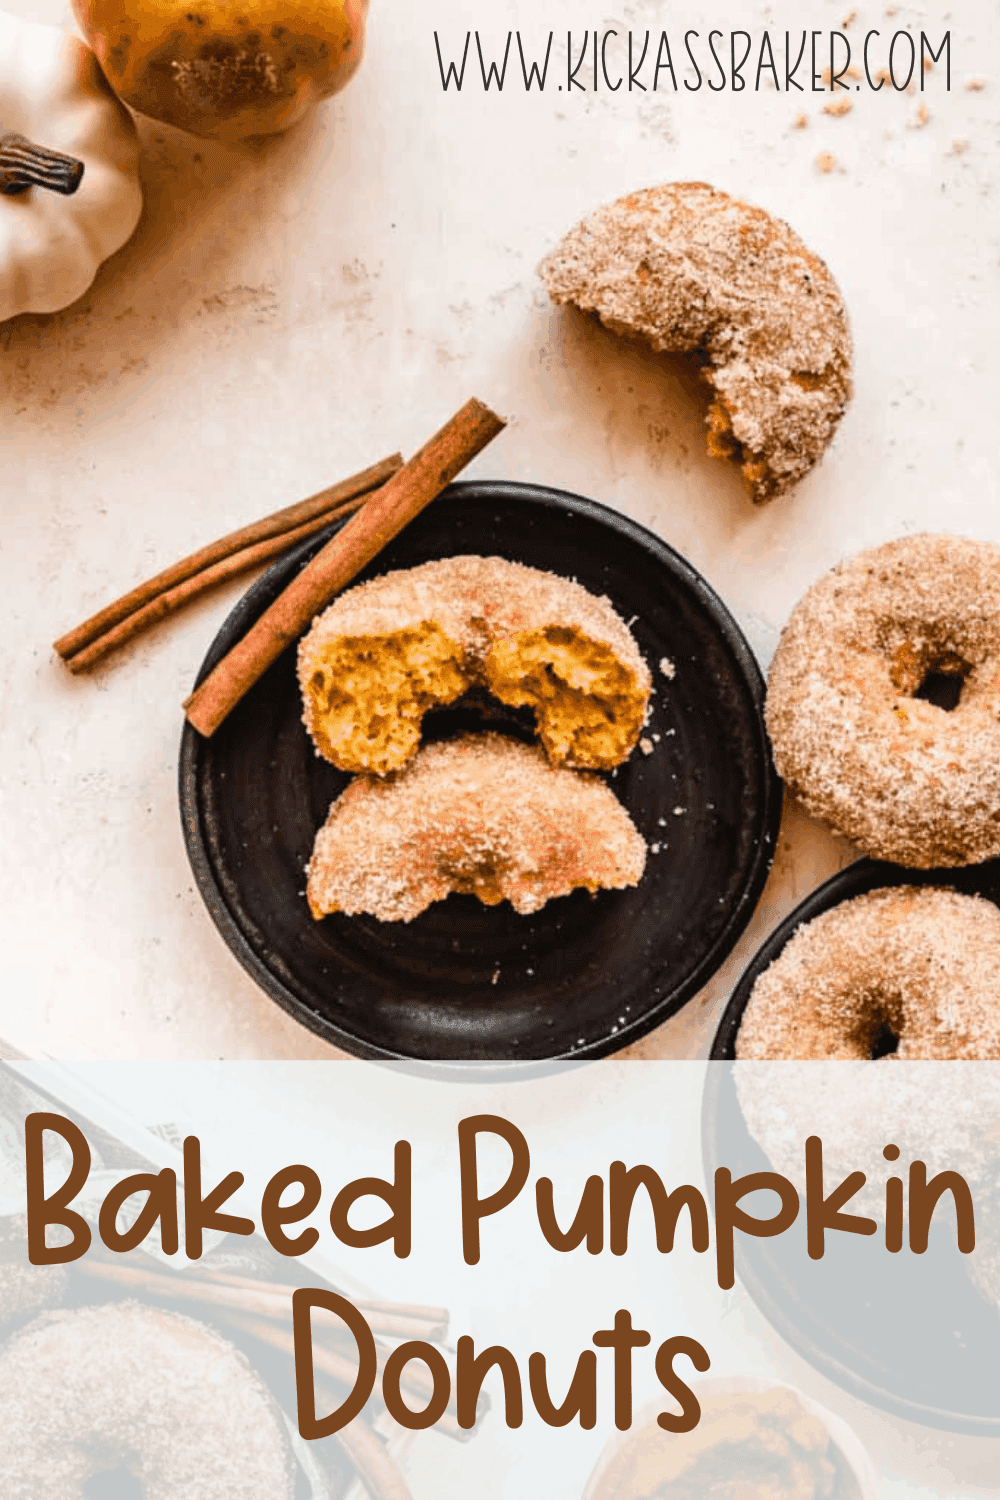 These moist cake pumpkin donuts are a quick and easy fall breakfast you'll enjoy all season long.